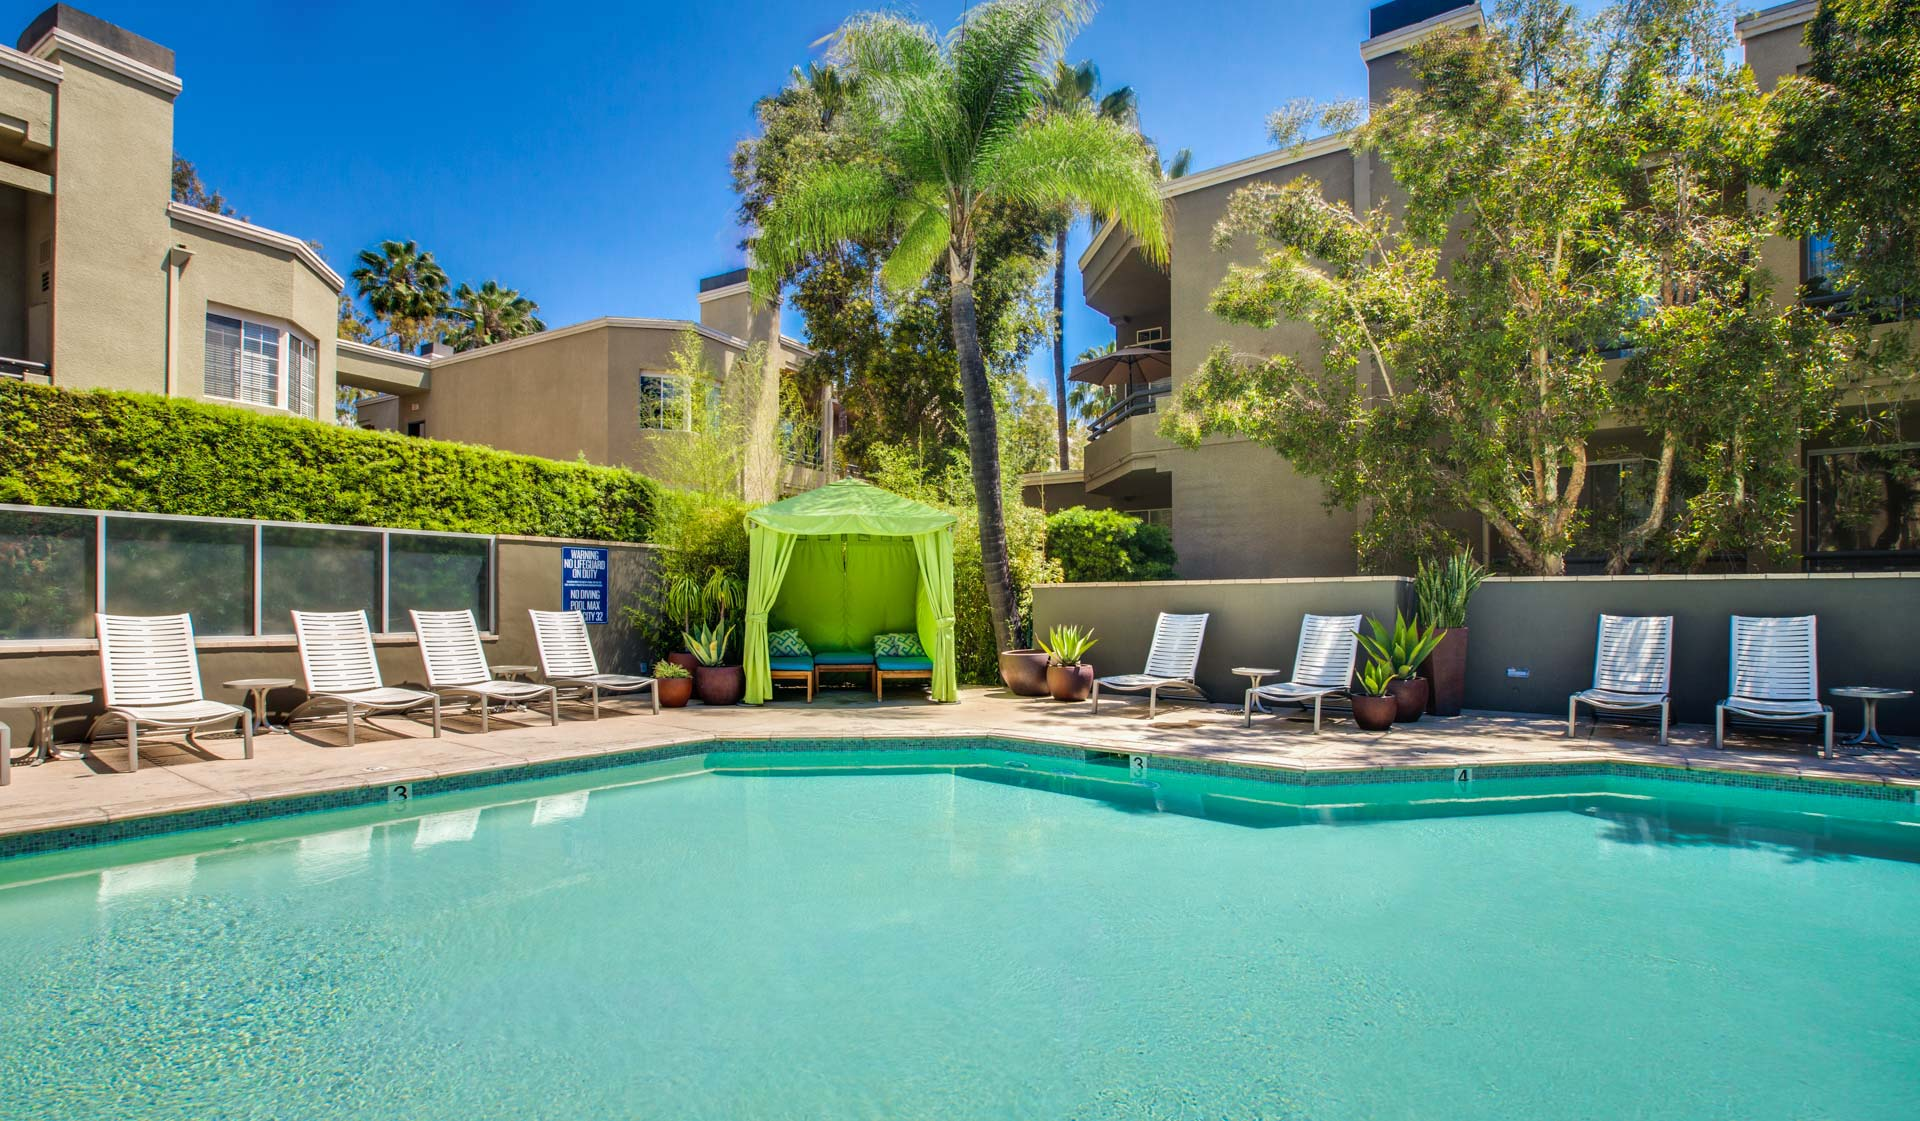 Hillcreste Apartments - Los Angeles, CA - Pool and Apartments